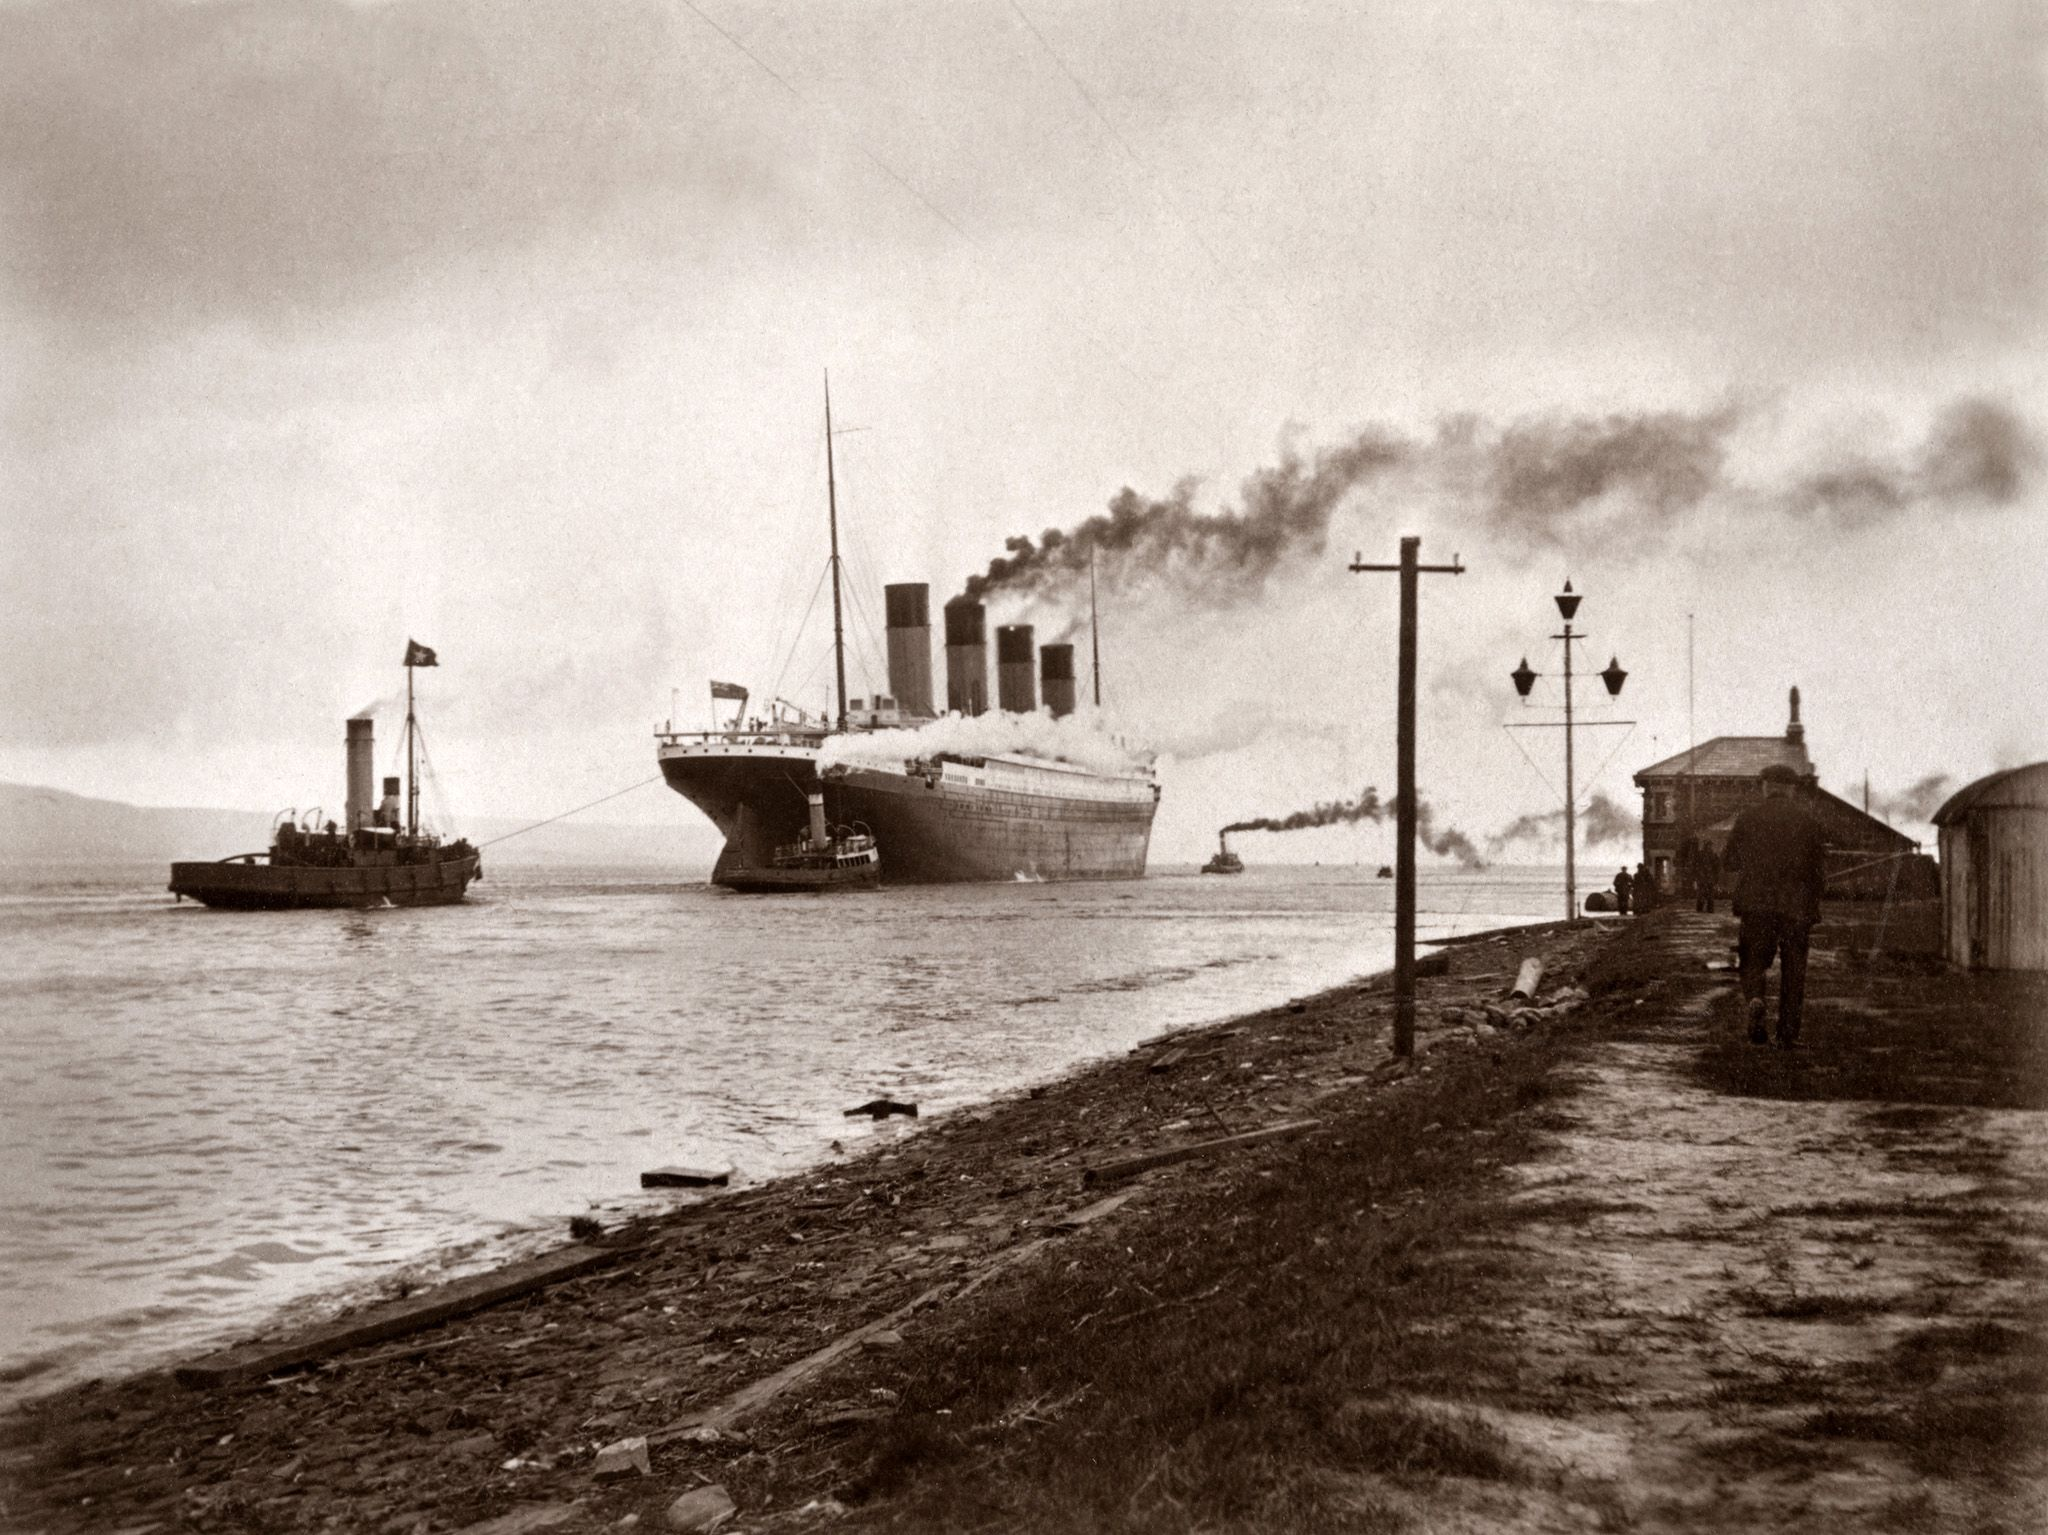 Titanic being pulled out to sea in Belfast.  This image is from Titanic's Fatal Fire. [Photo of the day - December 2017]